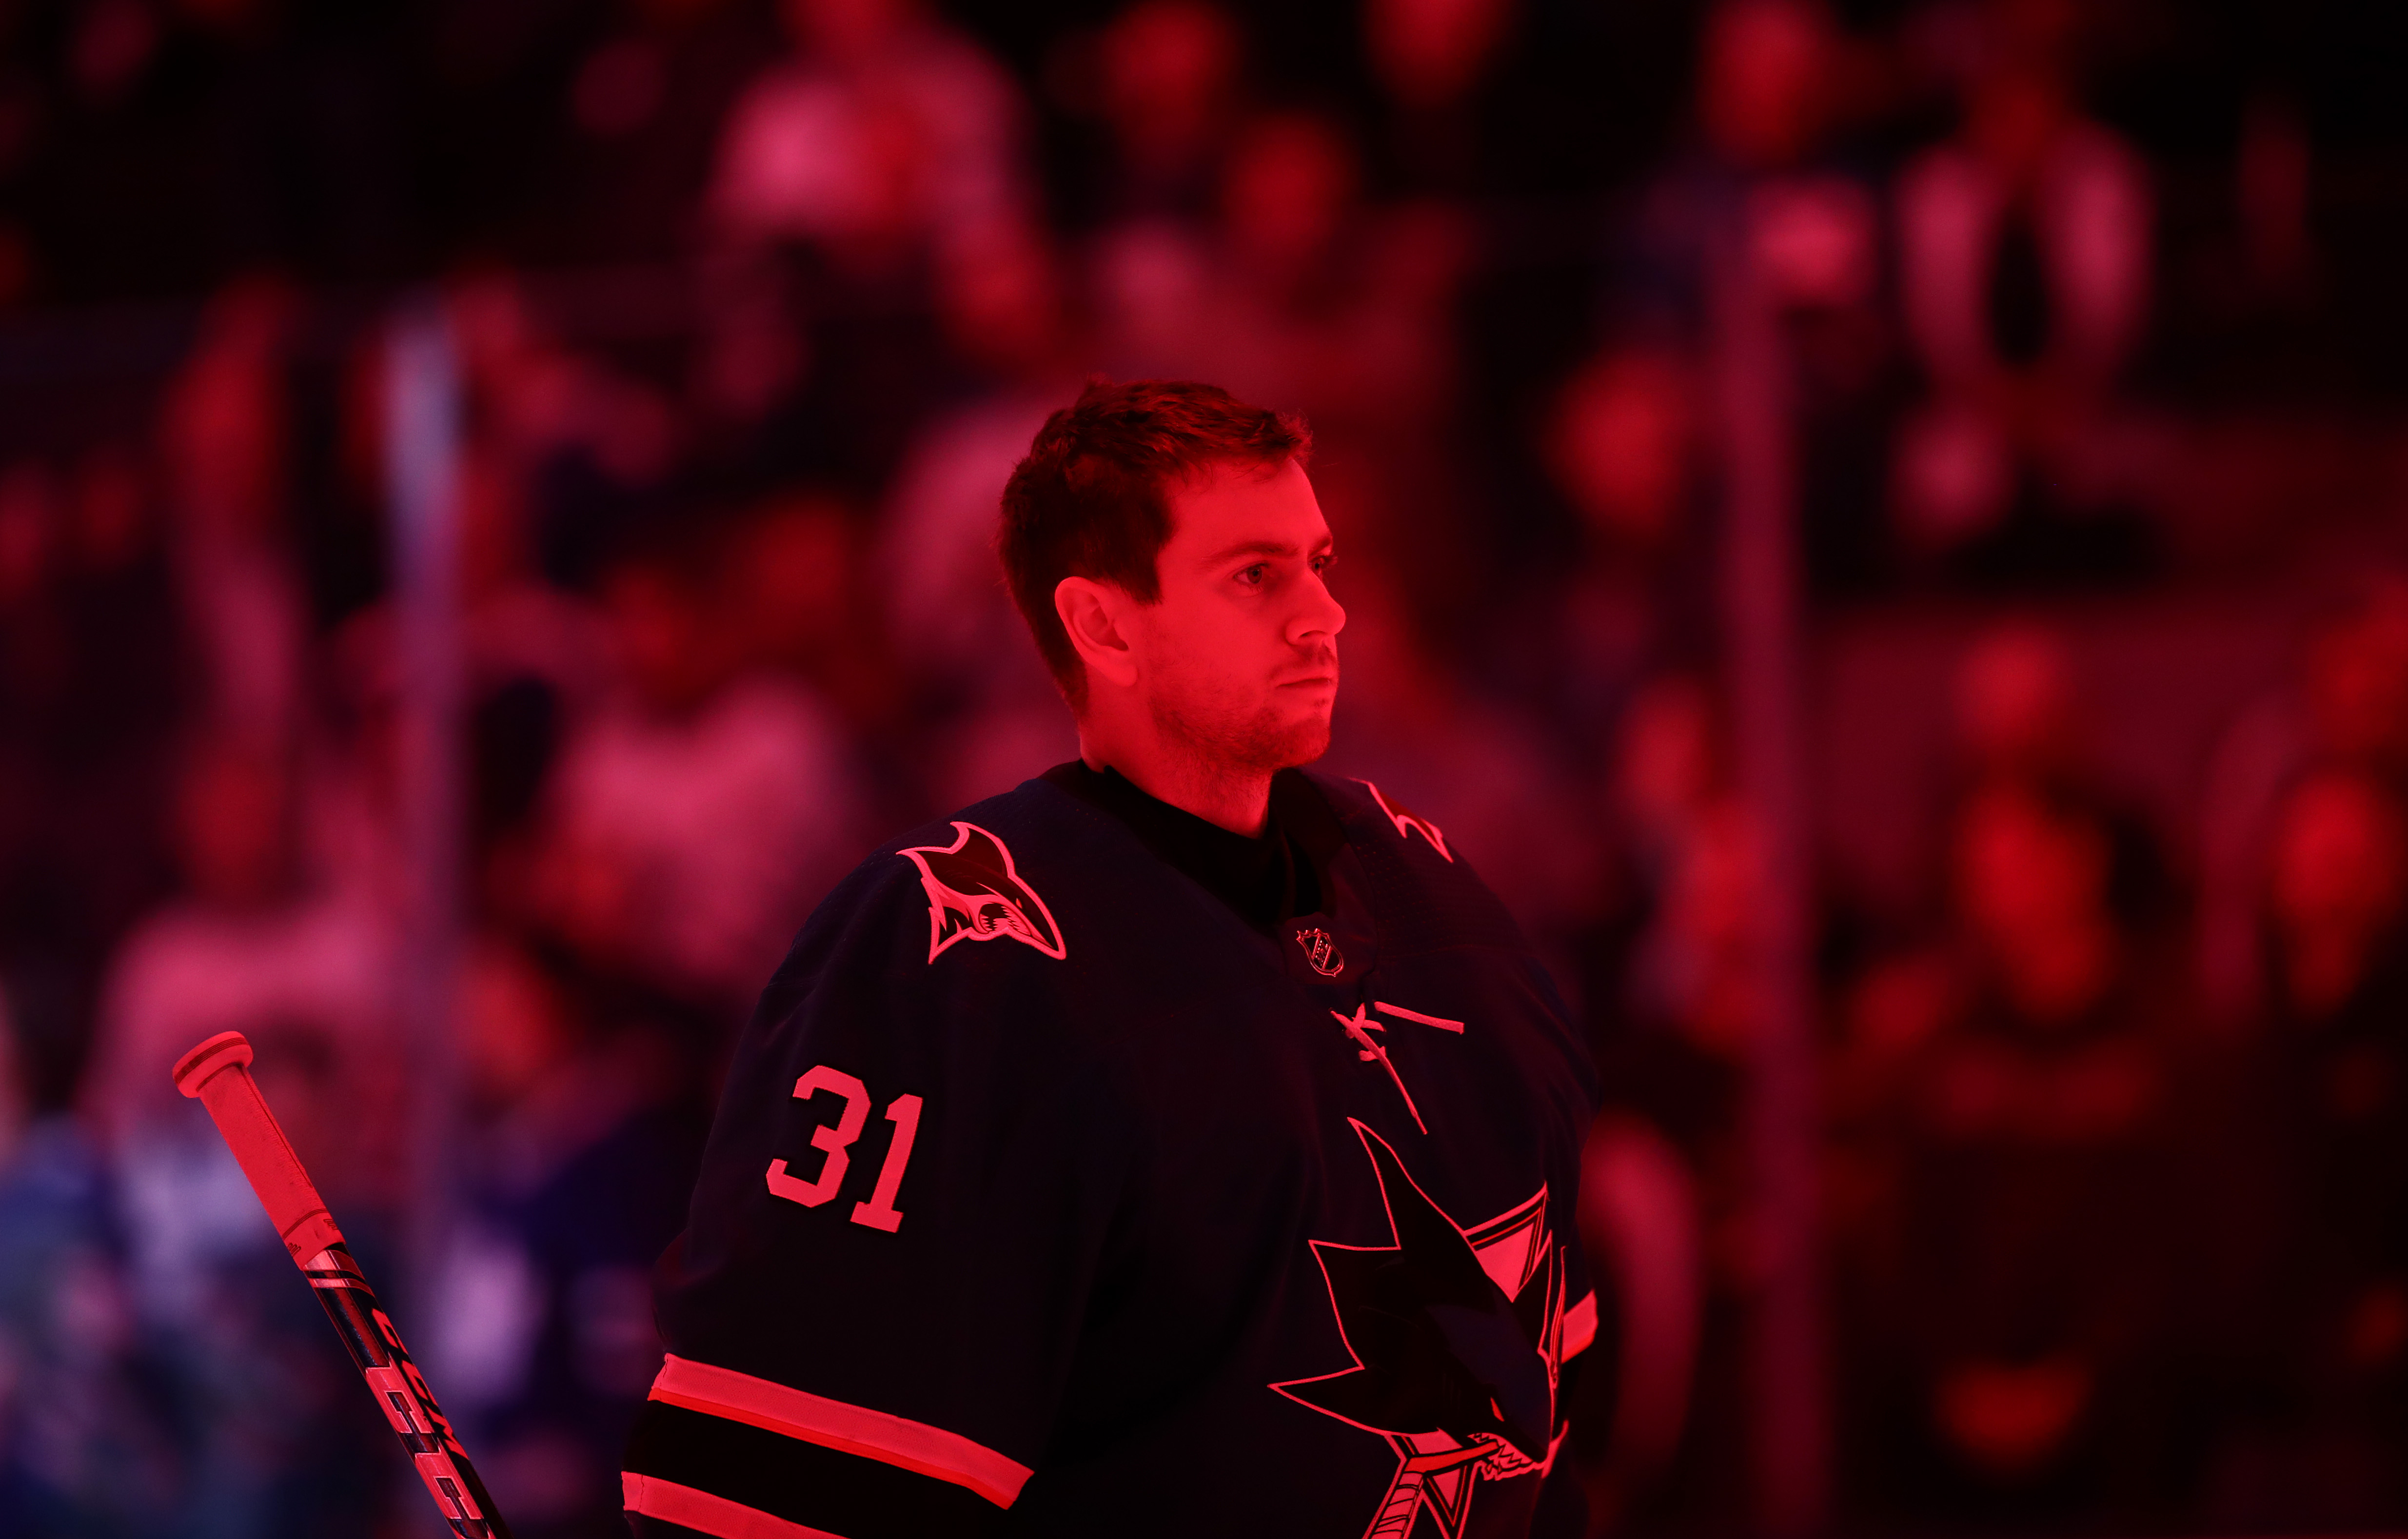 Martin Jones #31 of the San Jose Sharks stands for the National Anthem before their game against the Toronto Maple Leafs at SAP Center on March 03, 2020 in San Jose, California.